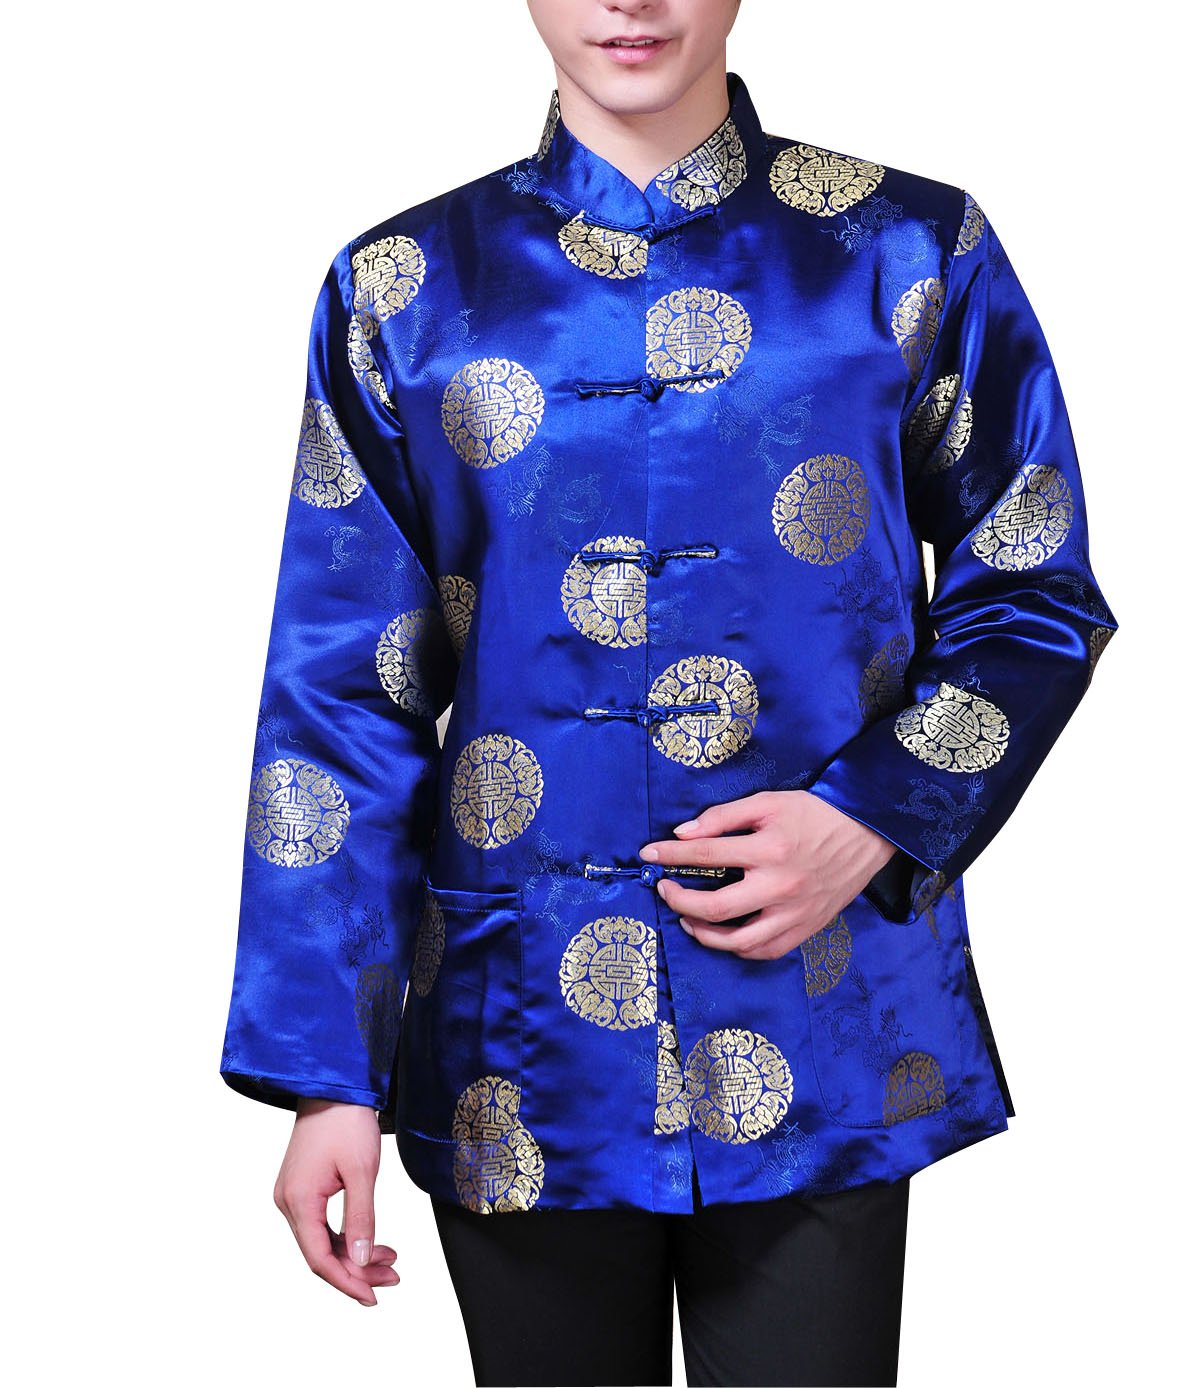 ACVIP Men's Lucky Coin and Dragon Brocade Long Sleeve Chinese Kung Fu Tang Jacket Shirt (US S / Chinese L, Blue)